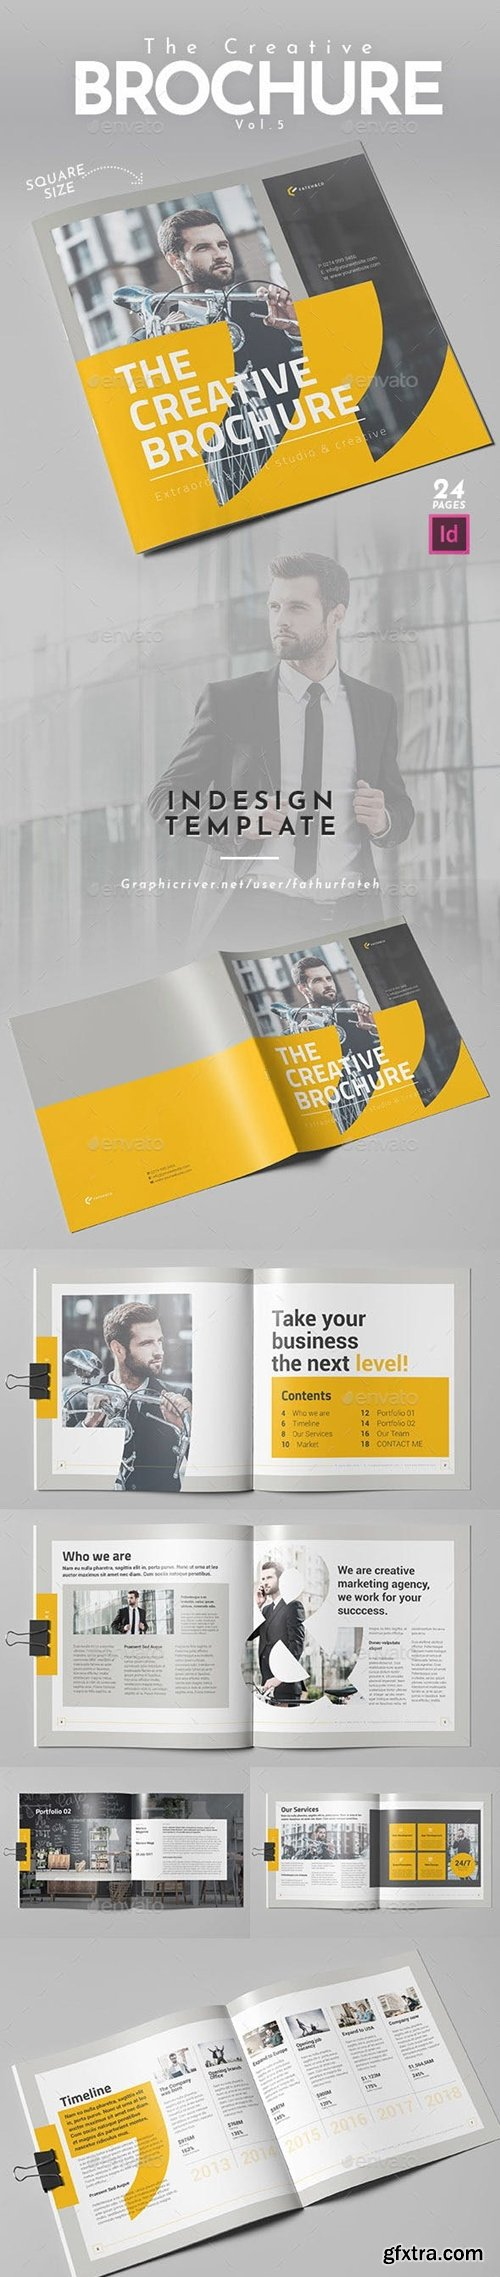 Graphicriver - The Creative Brochure Vol.5 - Square 23430984